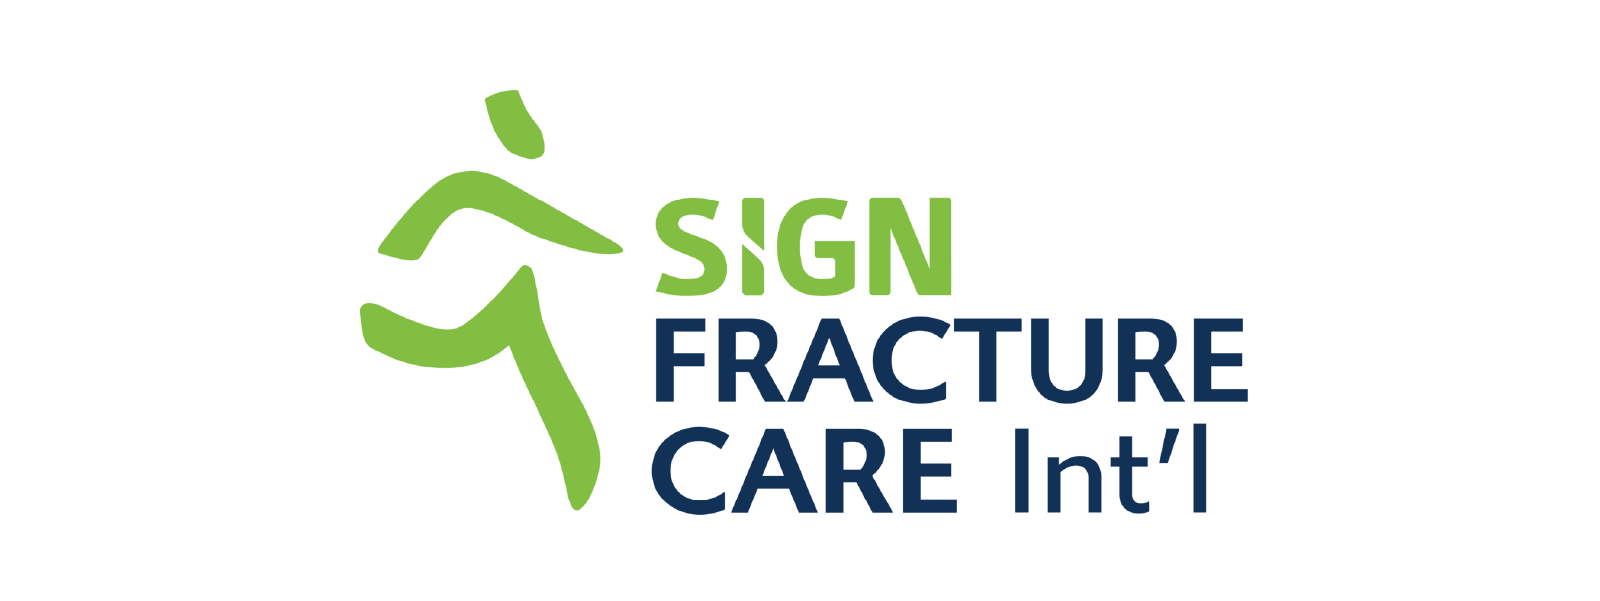 SIGN Fracture Care logo